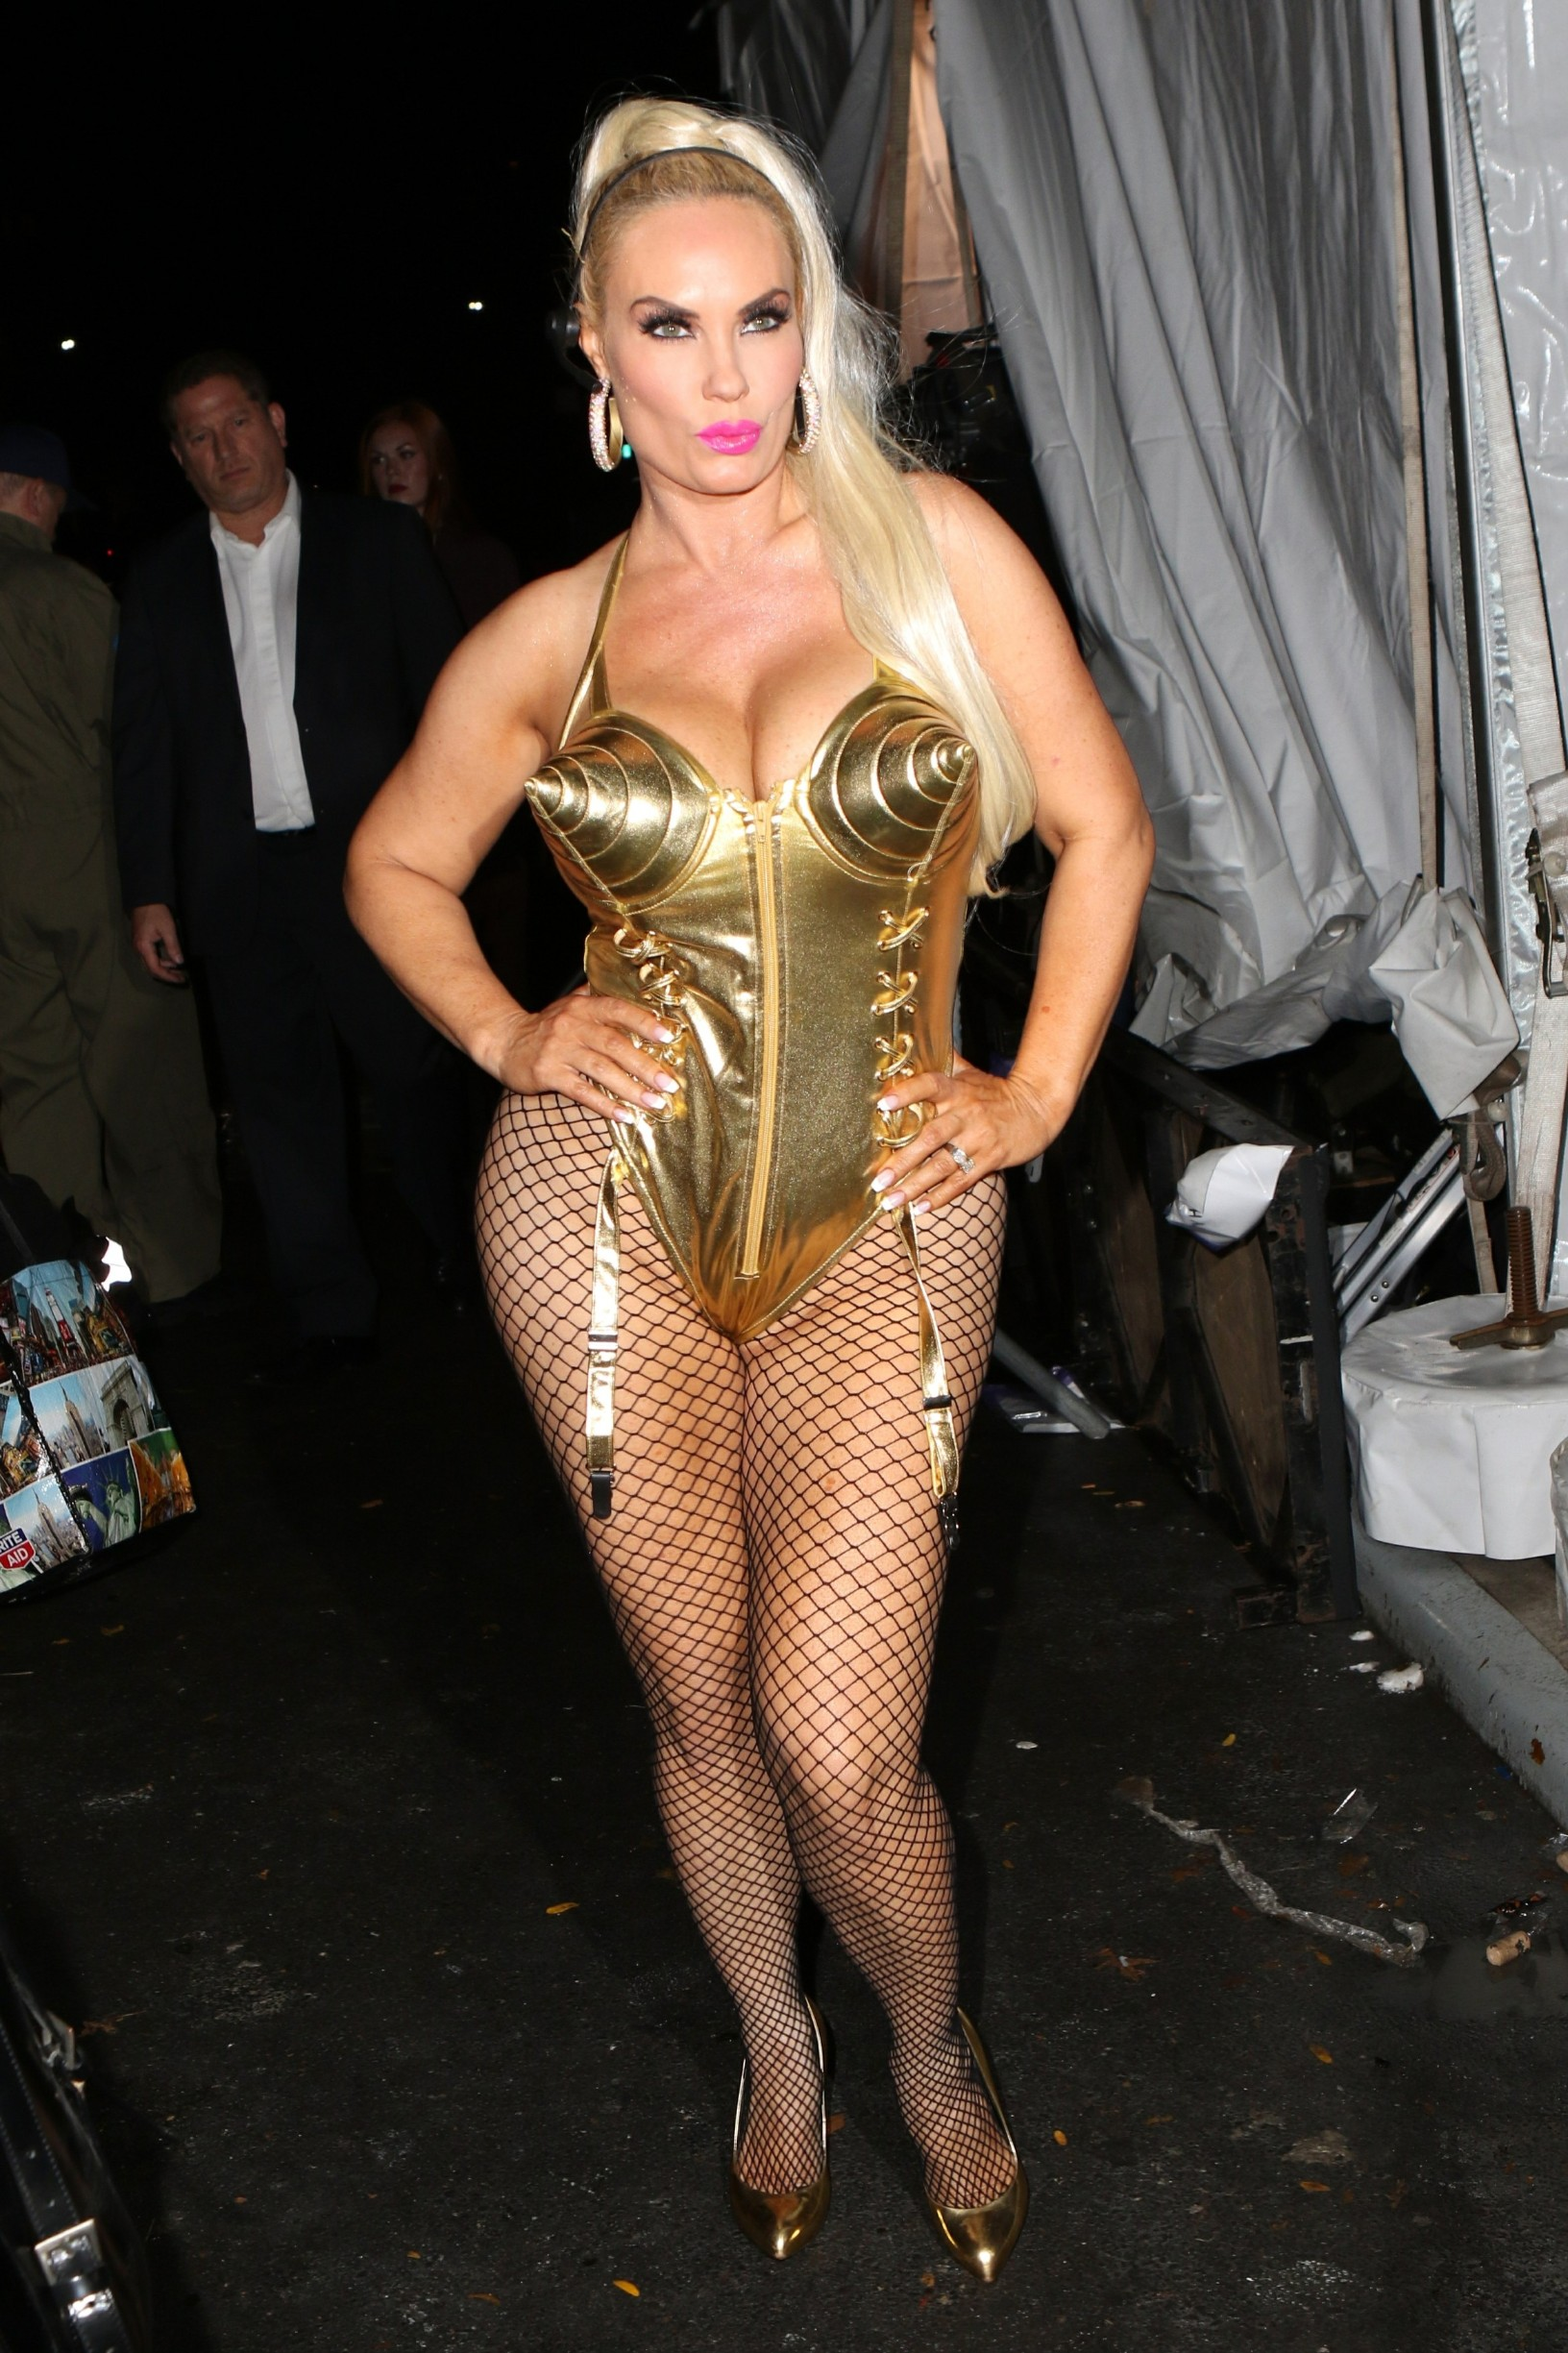 , New York, NY - 20191031 Guests arrive at Heidi Klum's 2019 Halloween party,  -PICTURED: Coco Austin -, Image: 480386173, License: Rights-managed, Restrictions: , Model Release: no, Credit line: NANCY RIVERA / INSTAR Images / Profimedia